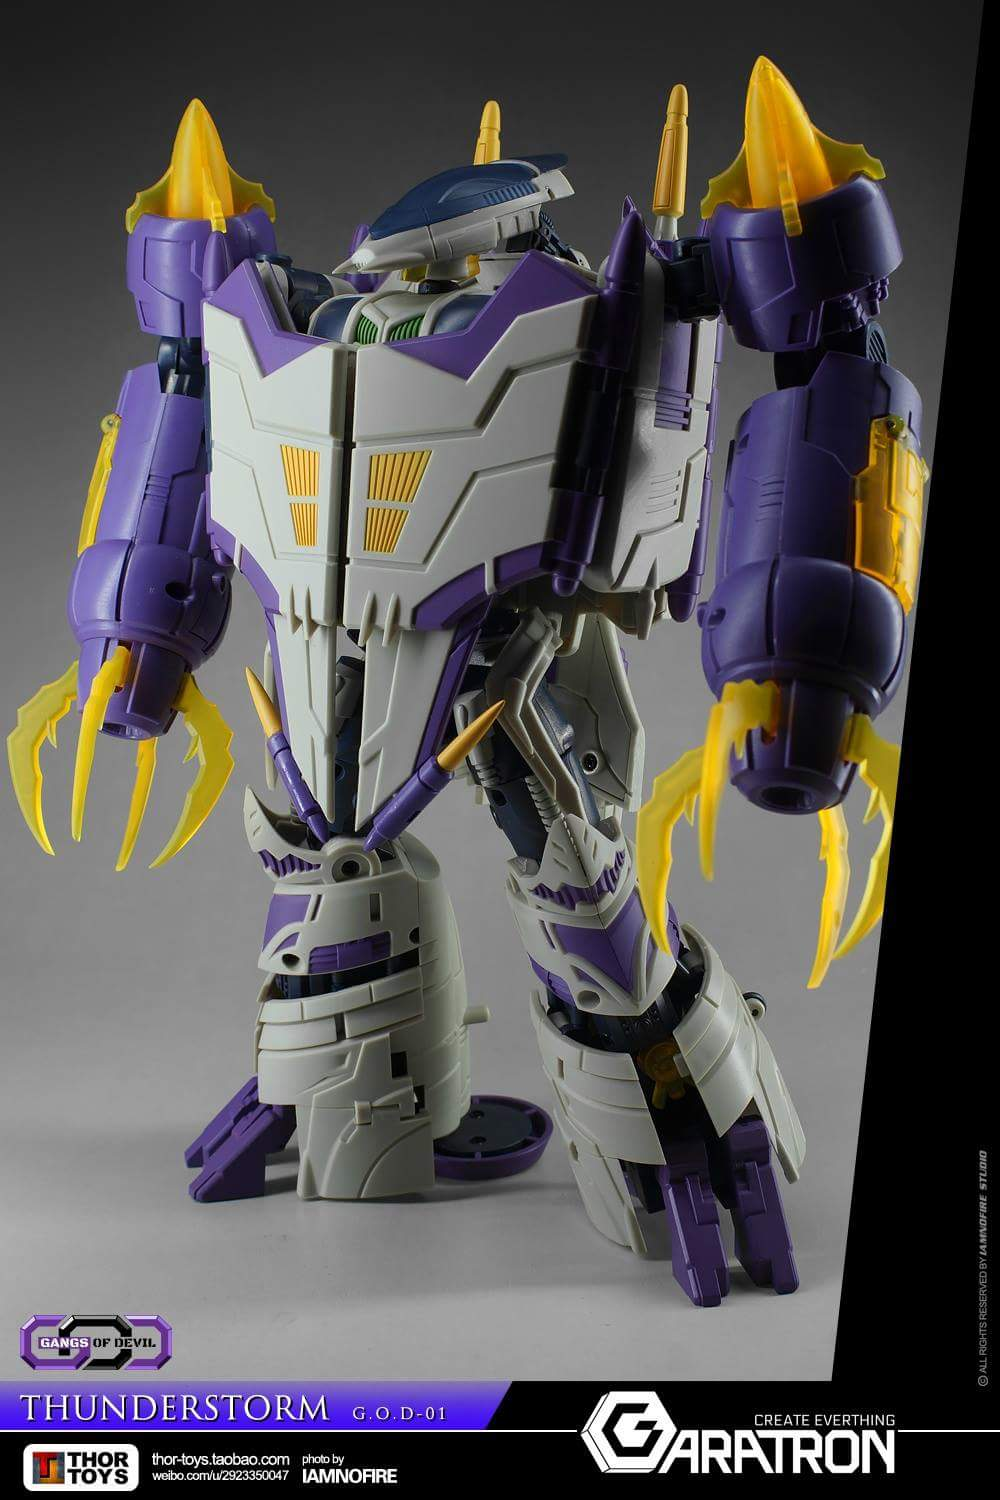 [Garatron] Produit Tiers - Gand of Devils G.O.D-01 Thunderstorm - aka Thunderwing des BD TF d'IDW - Page 2 YKl5iLVH